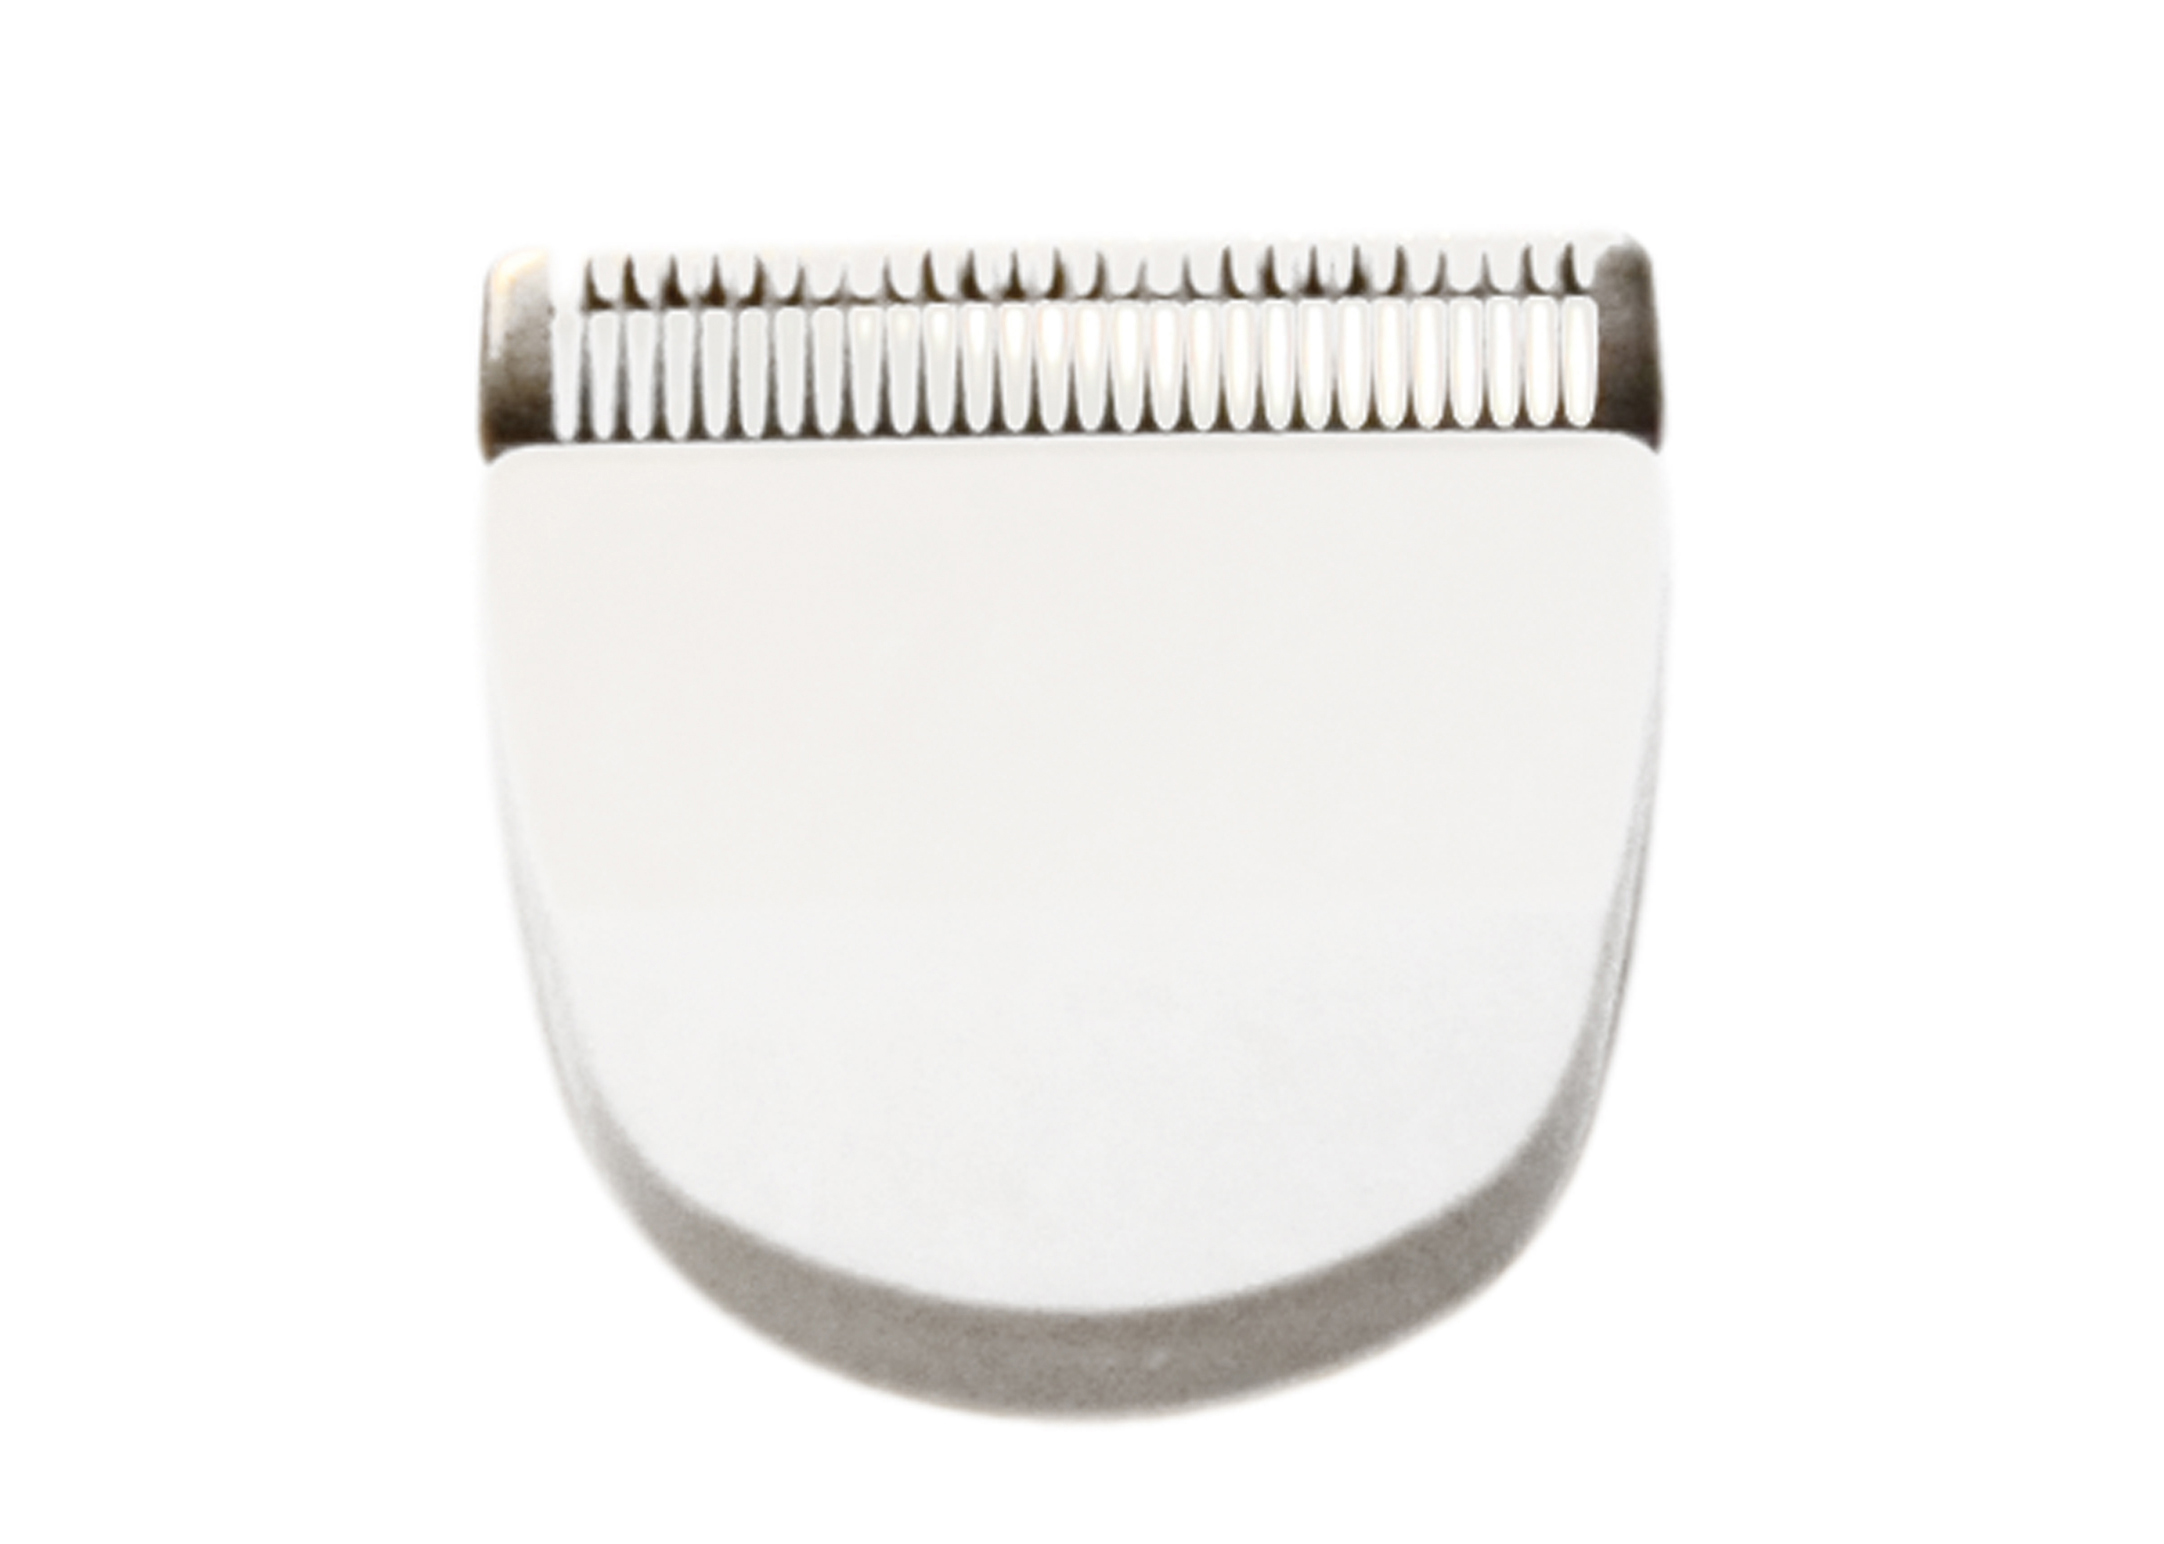 Wahl Replacement Blade for Smart Trim Clipper Blade